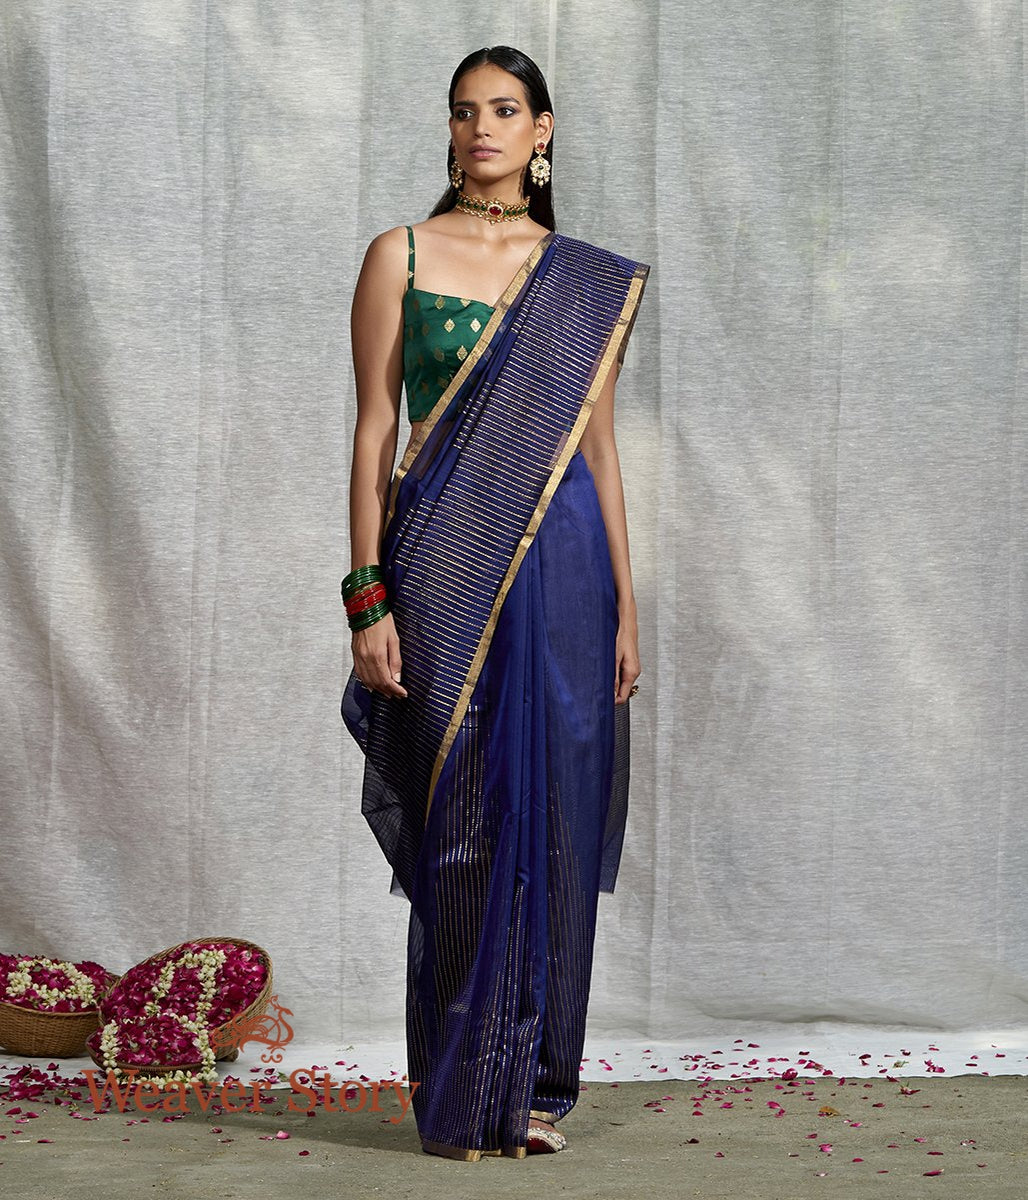 Handwoven Blue Merecrised Cotton Silk Saree with Zari Stripes